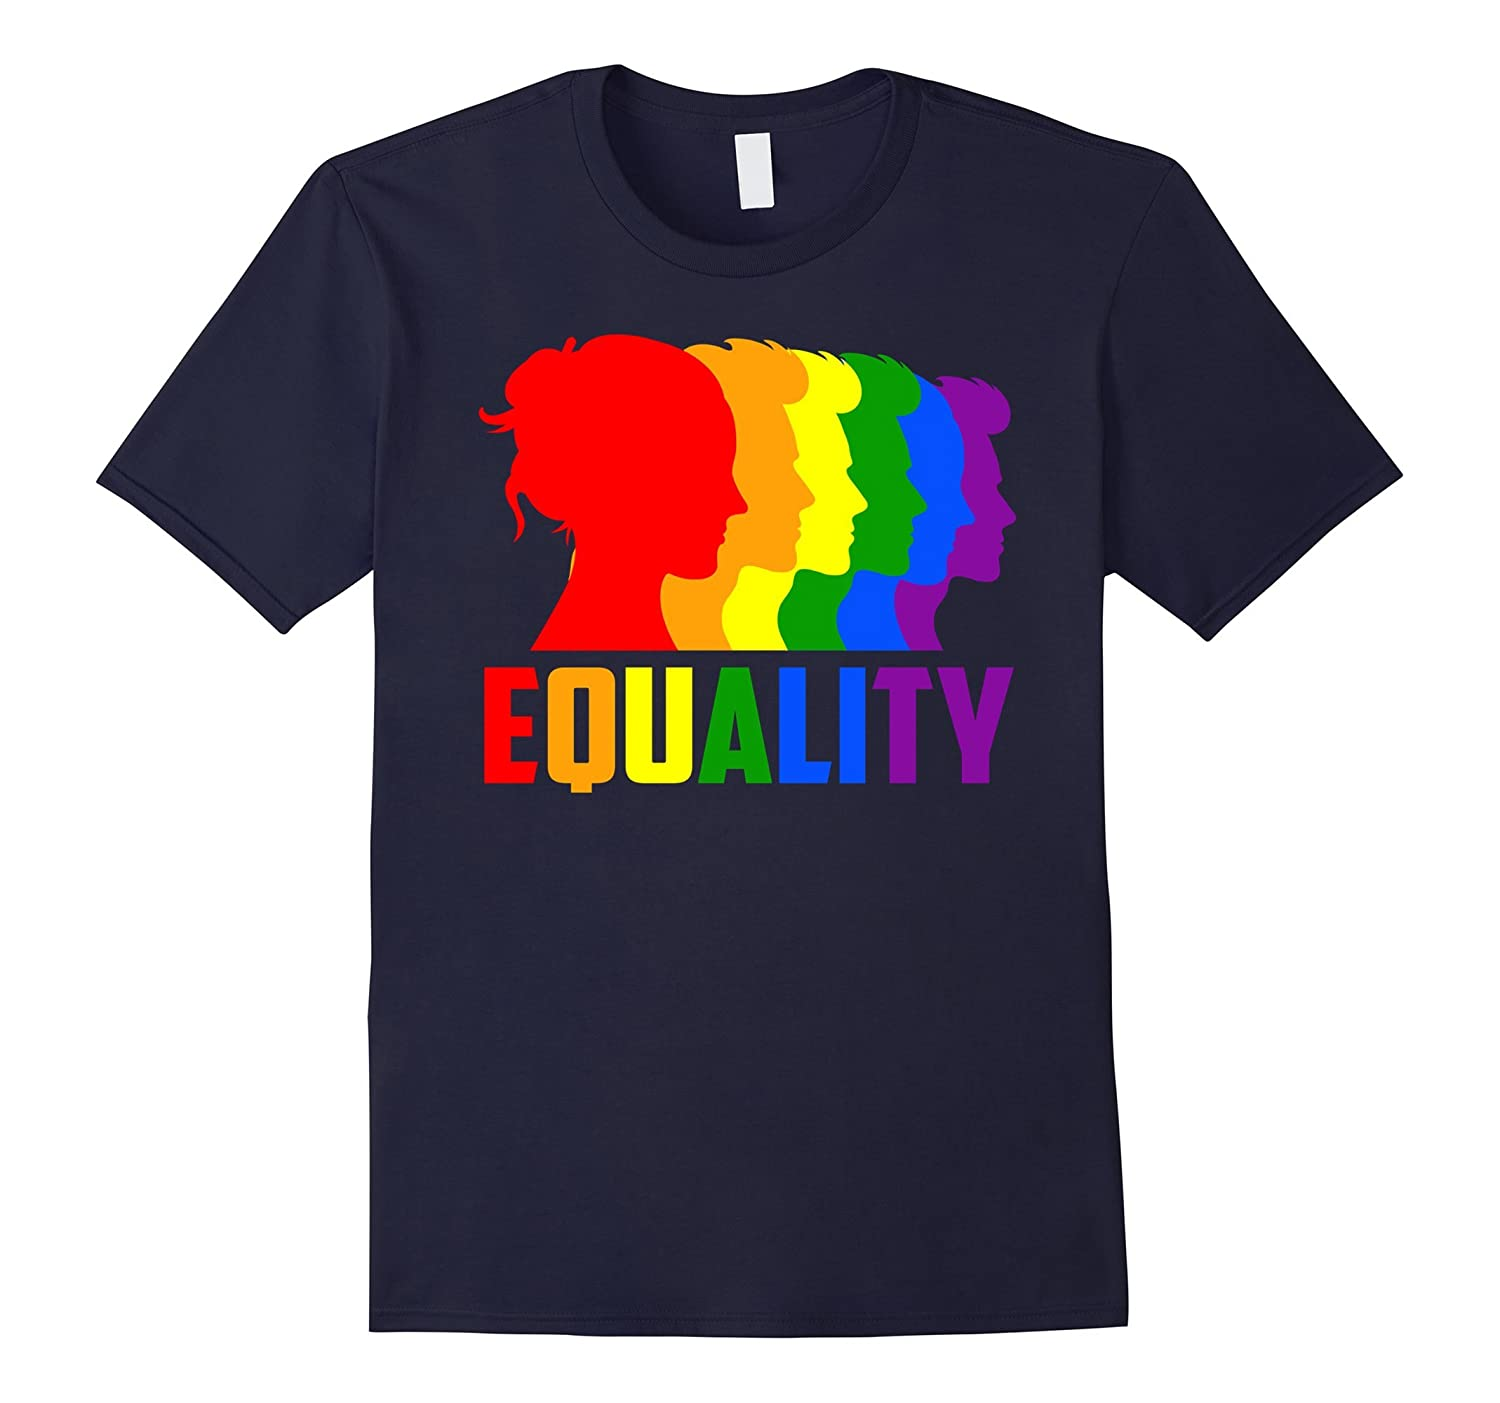 2017 National Equality Pride March Shirt LGBT Pride Shirt-CD